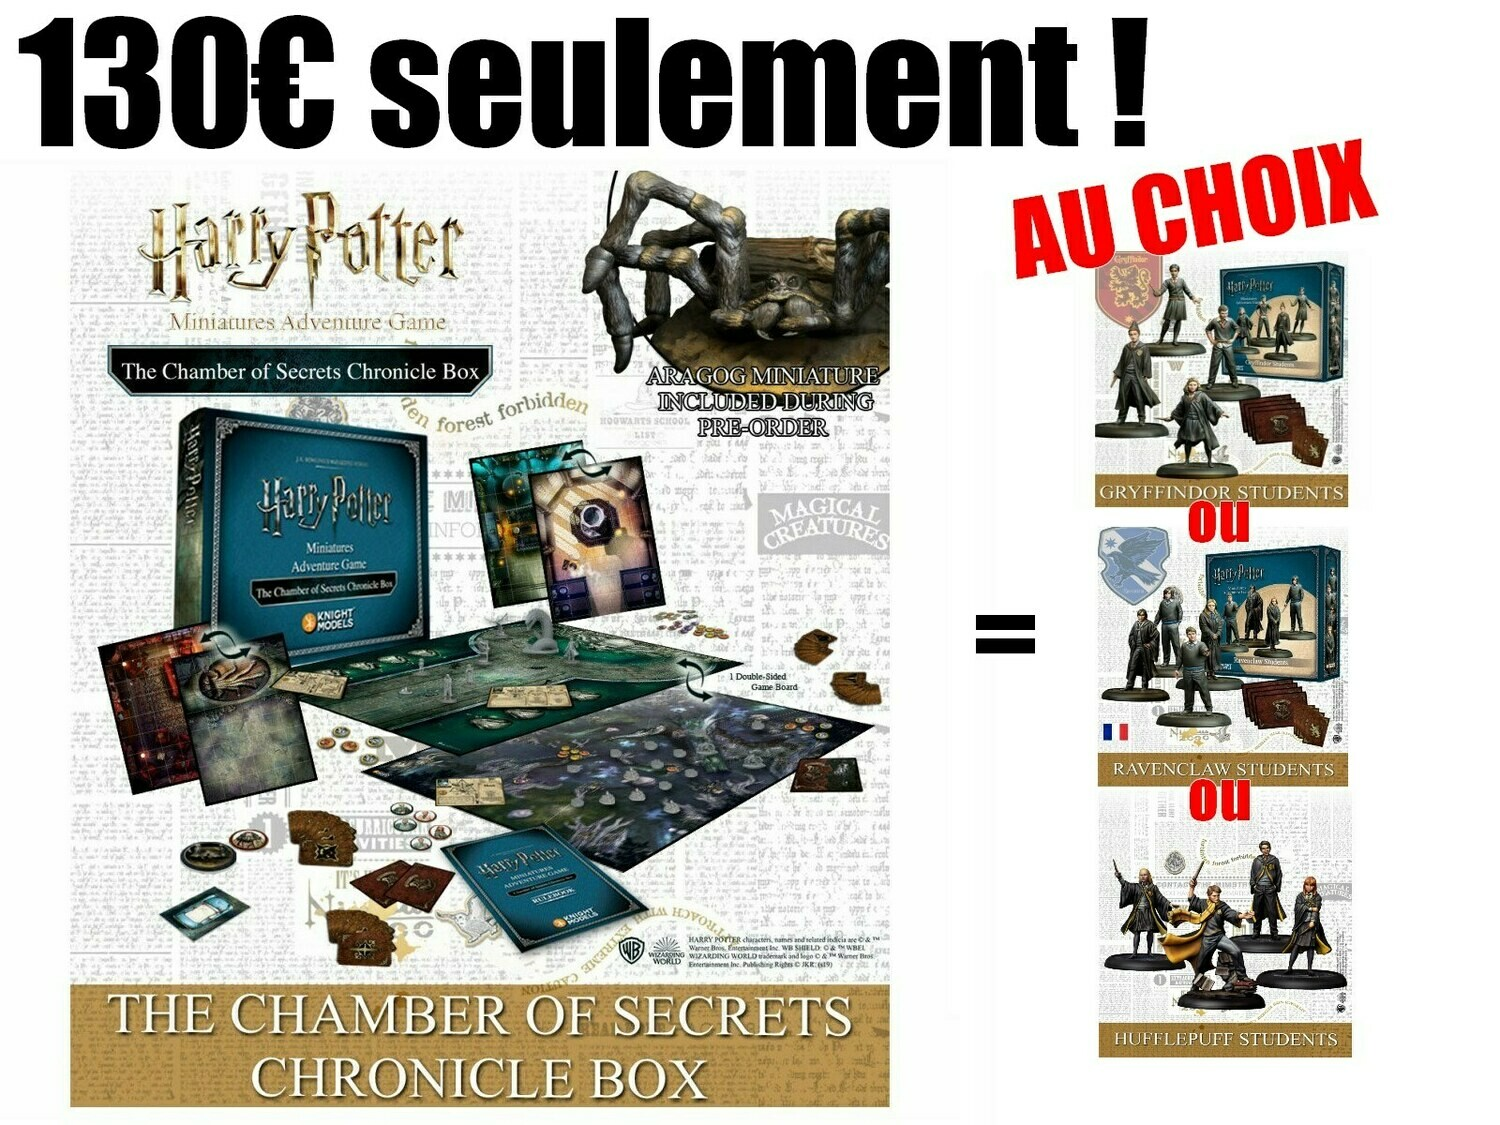 THE CHAMBER OF SECRETS: CHRONICLE EXPANSION VF + maison offerte